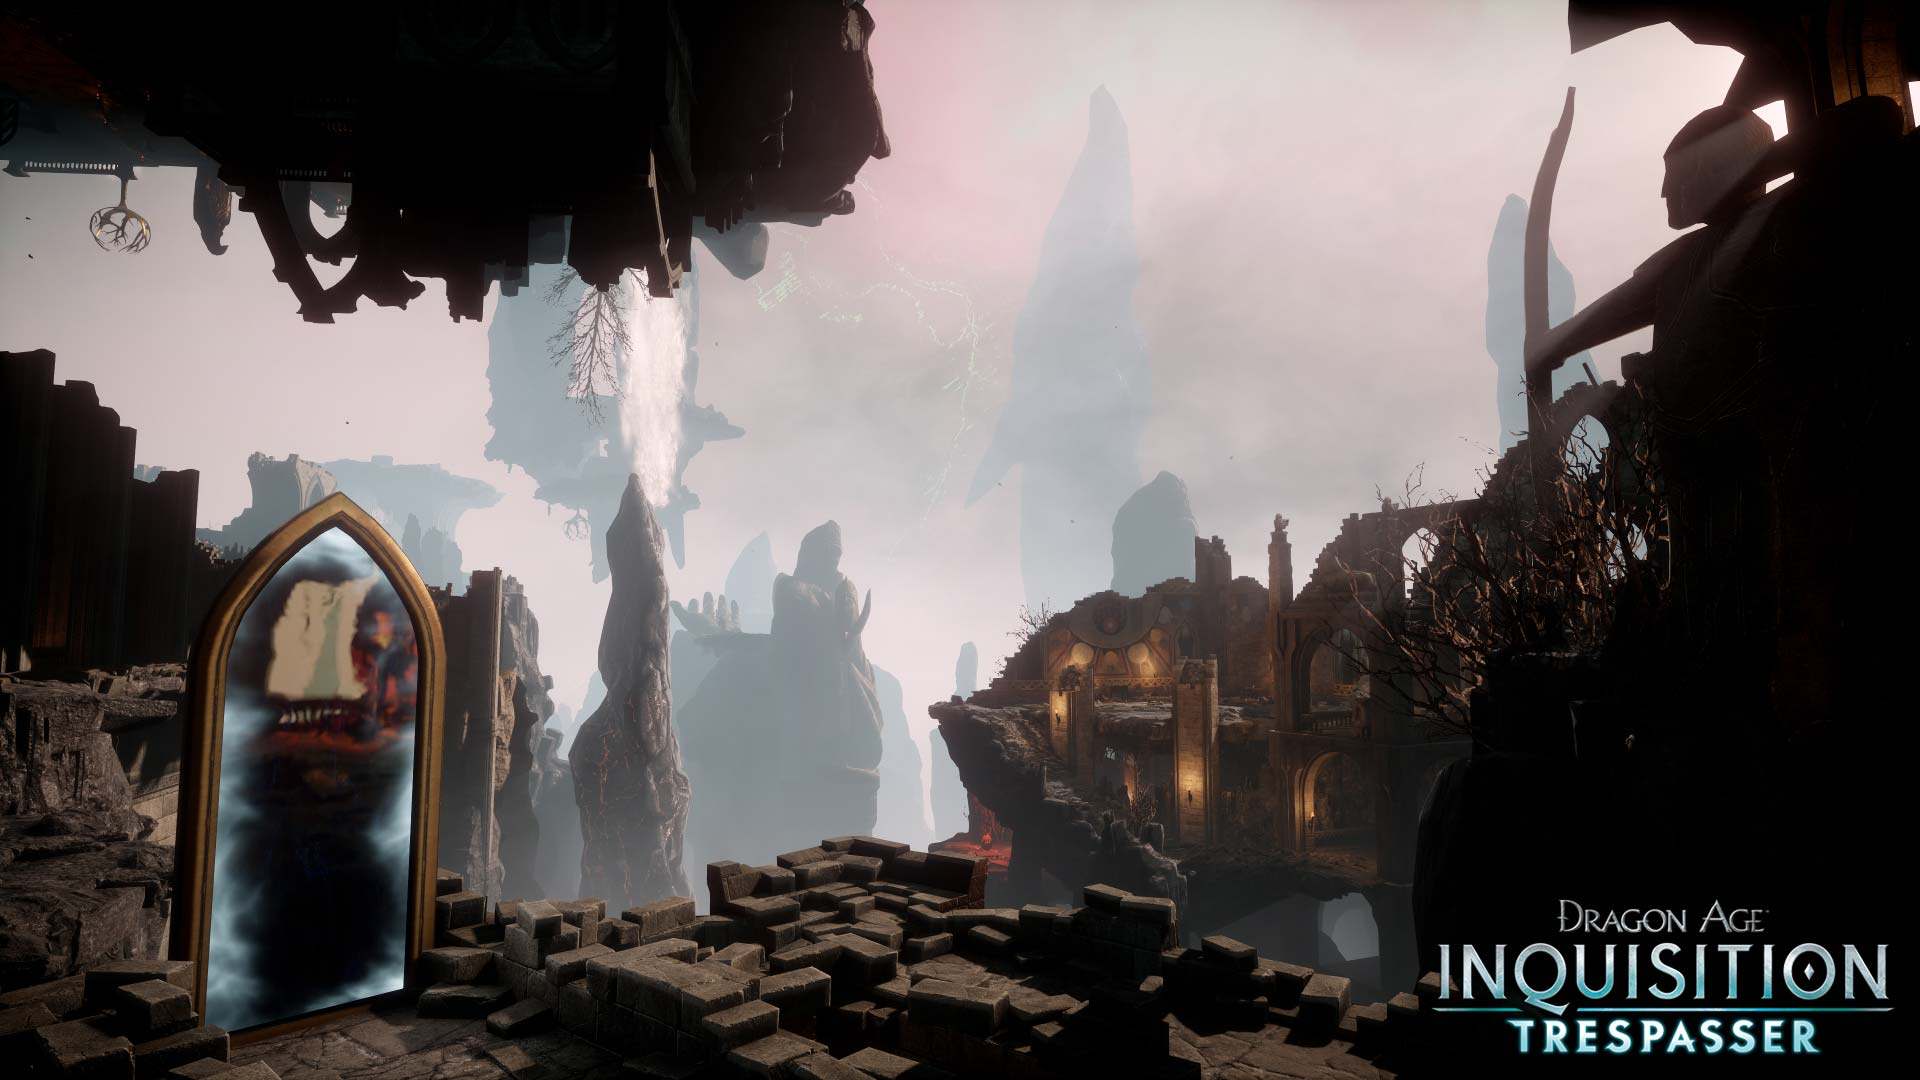 Dragon Age Inquisition Backgrounds Posted By John Johnson